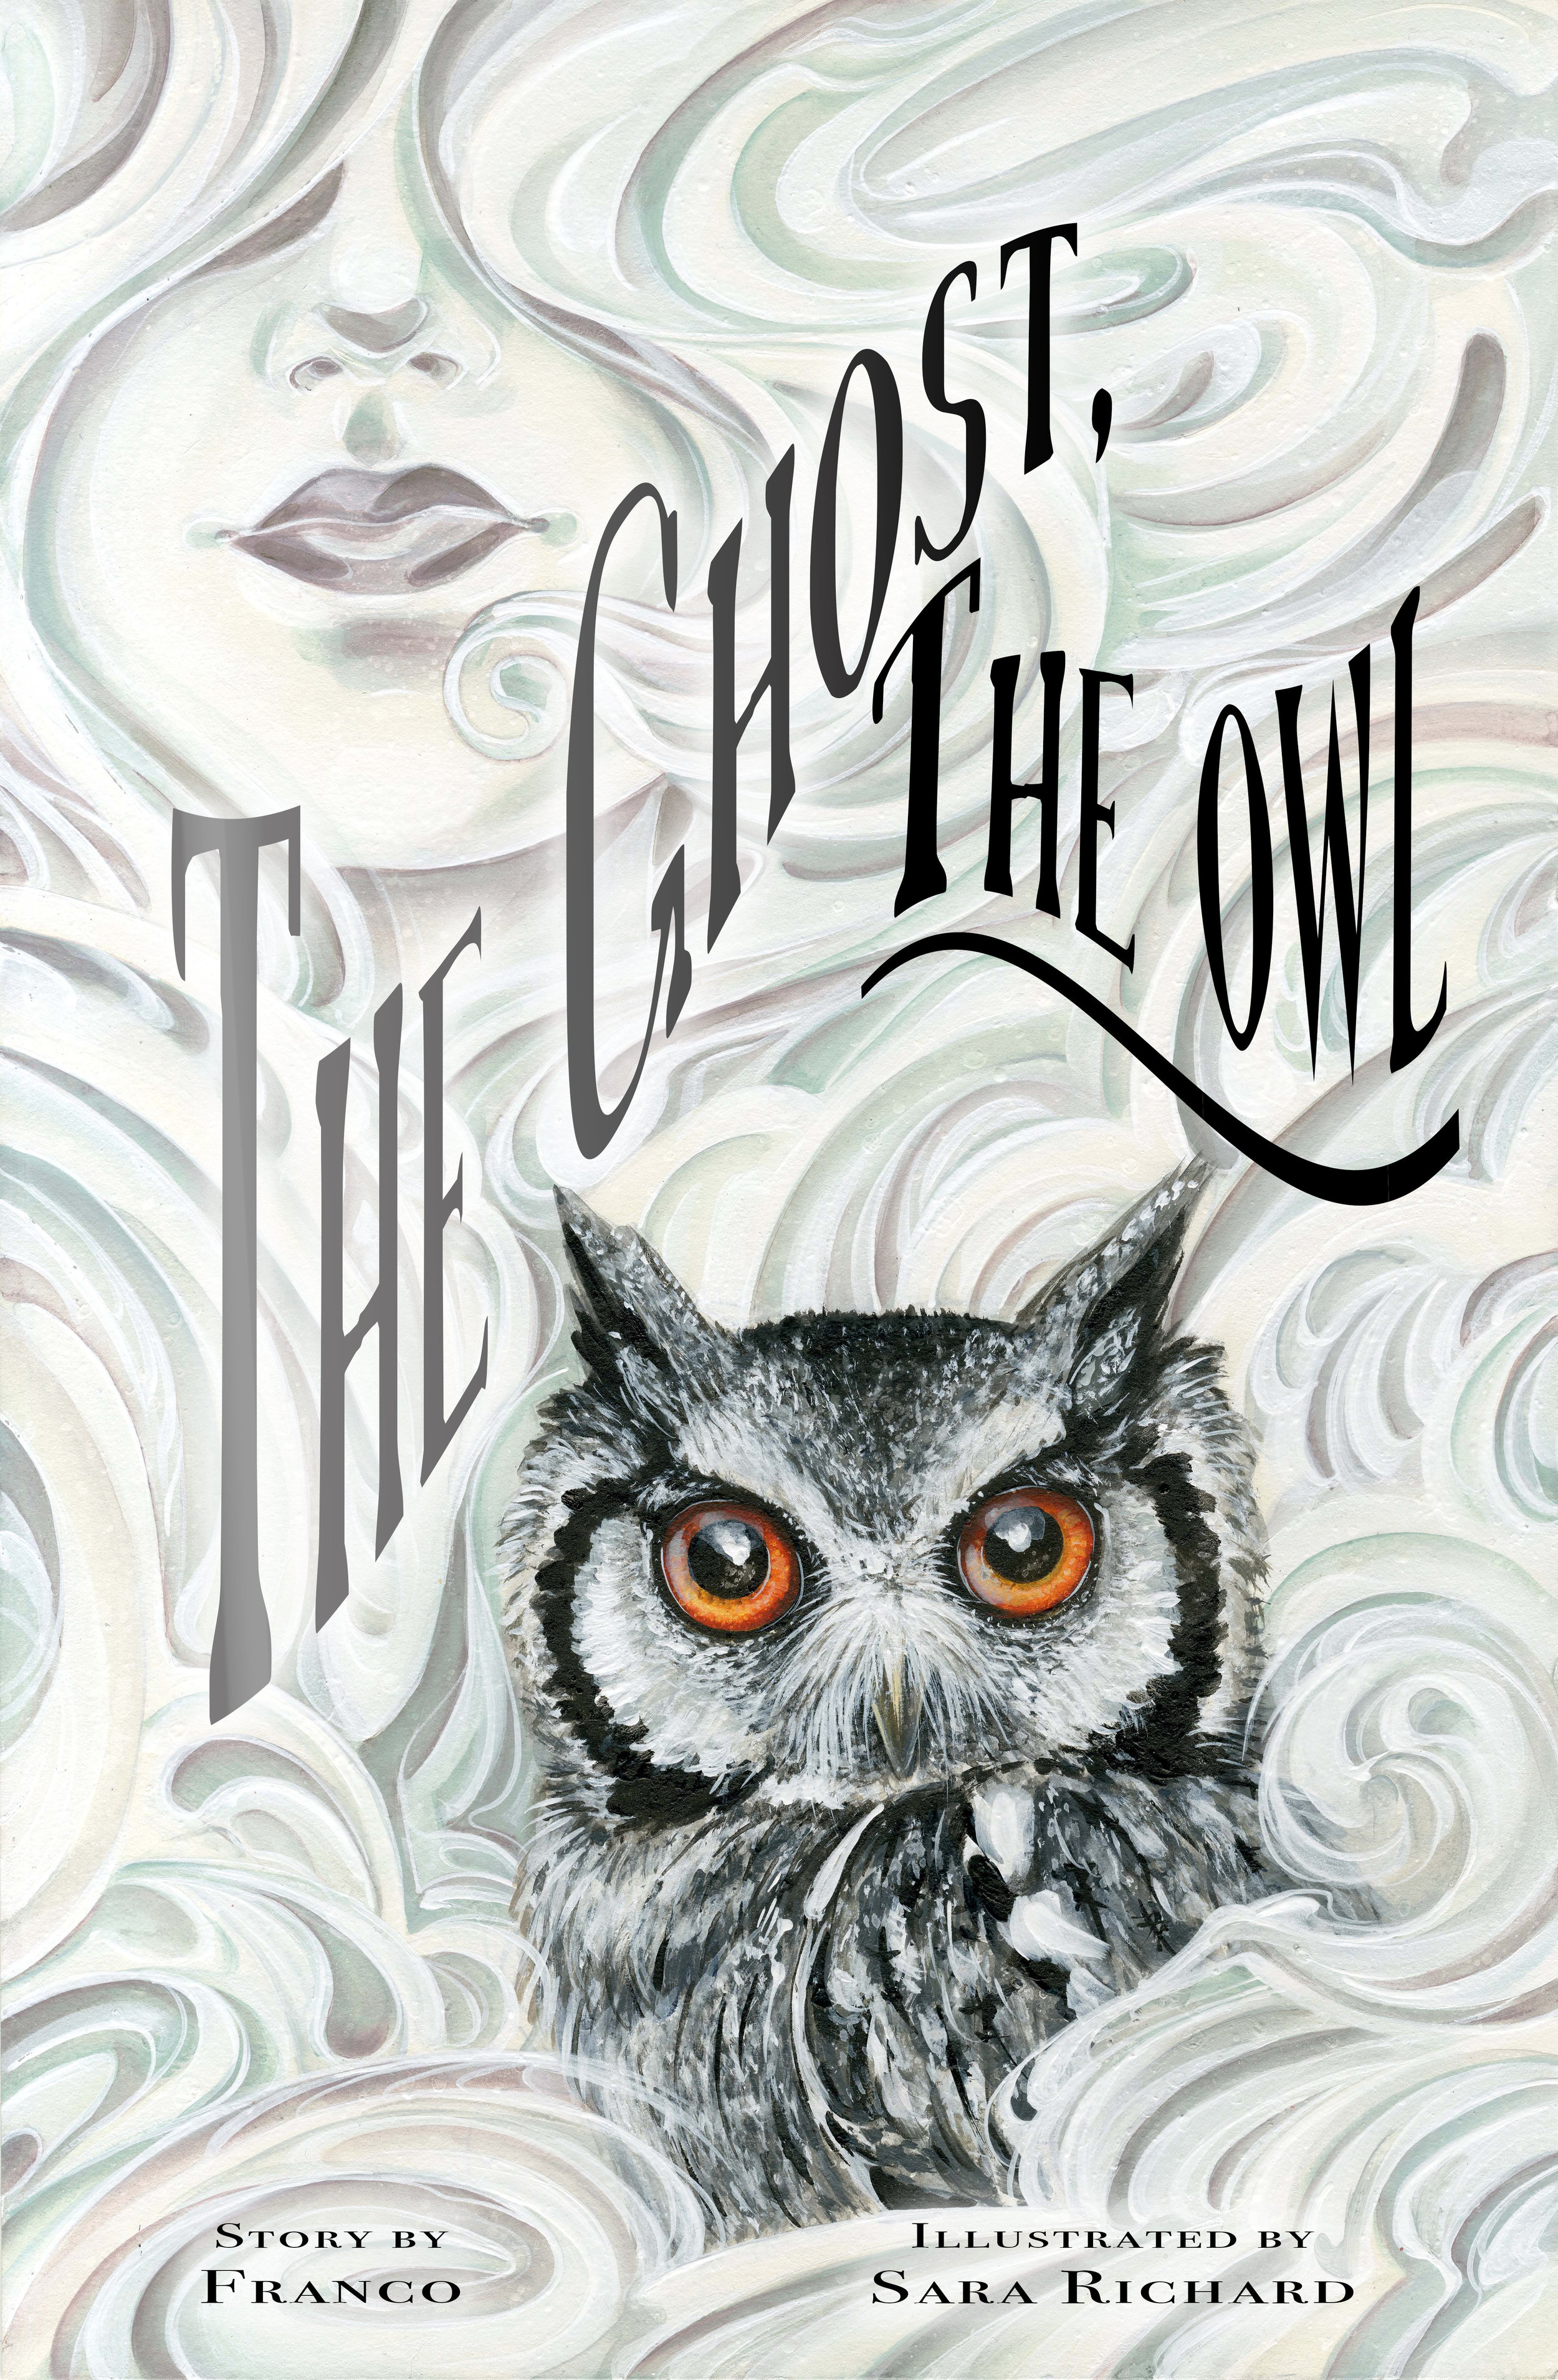 The Ghost The Owl.jpg